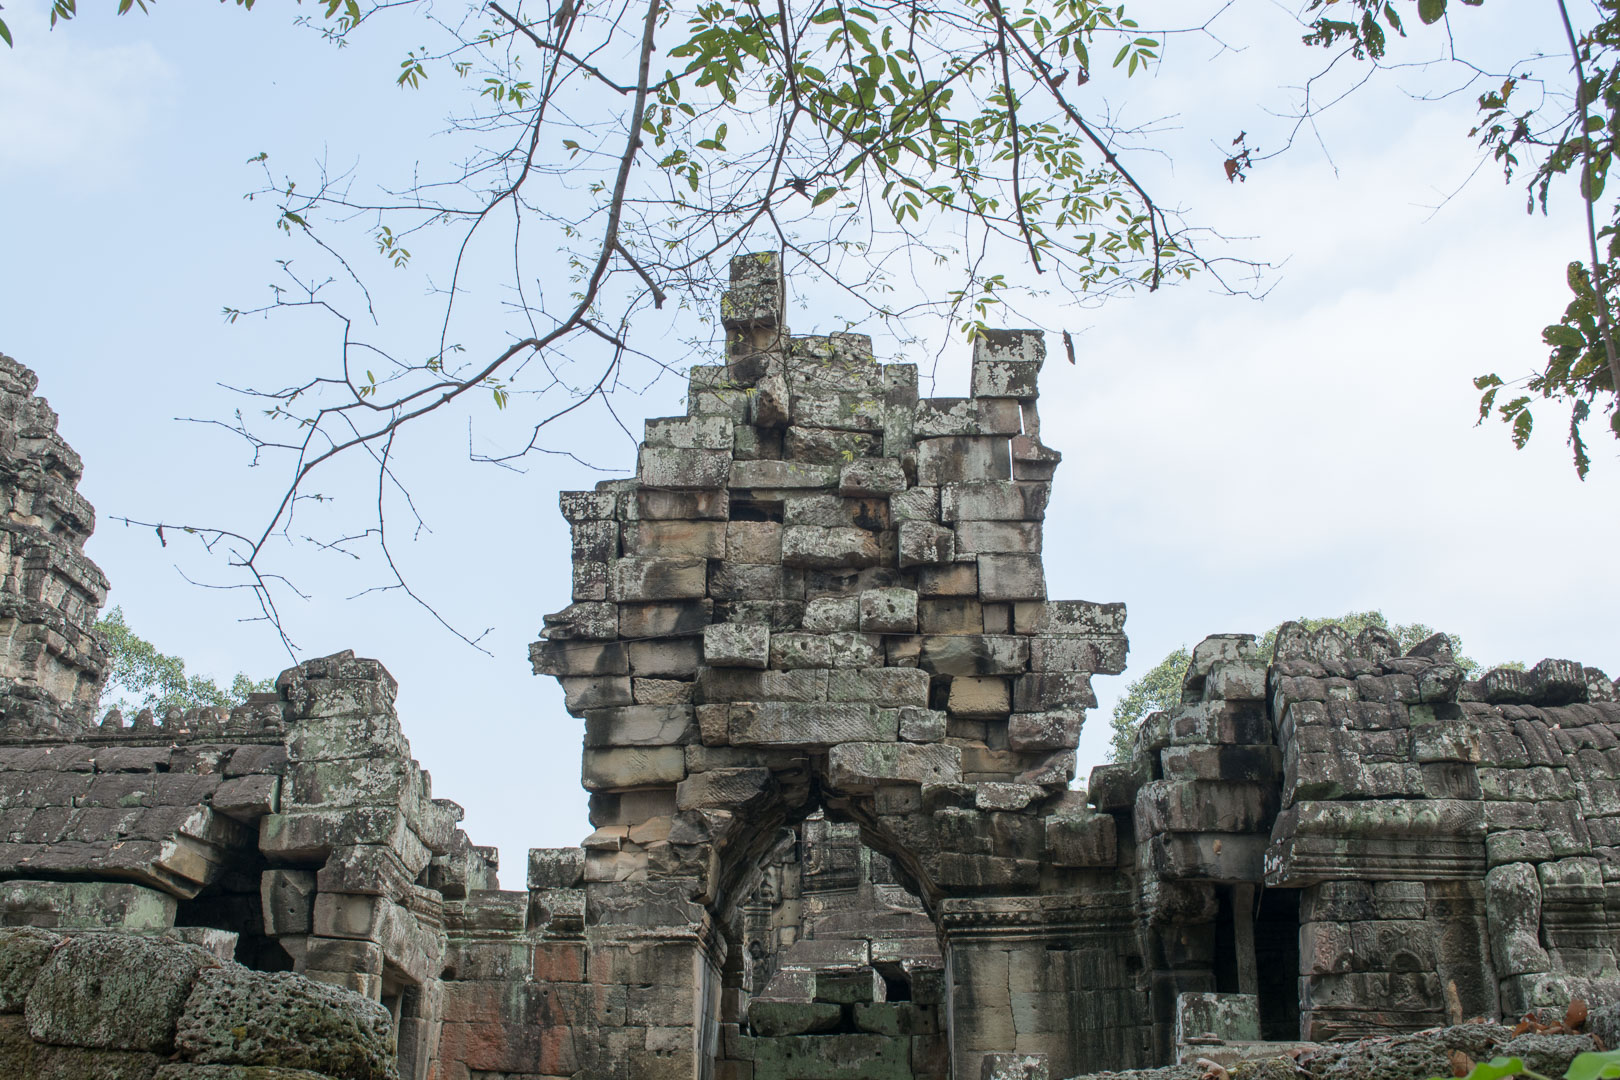 All from Banteay Kdei